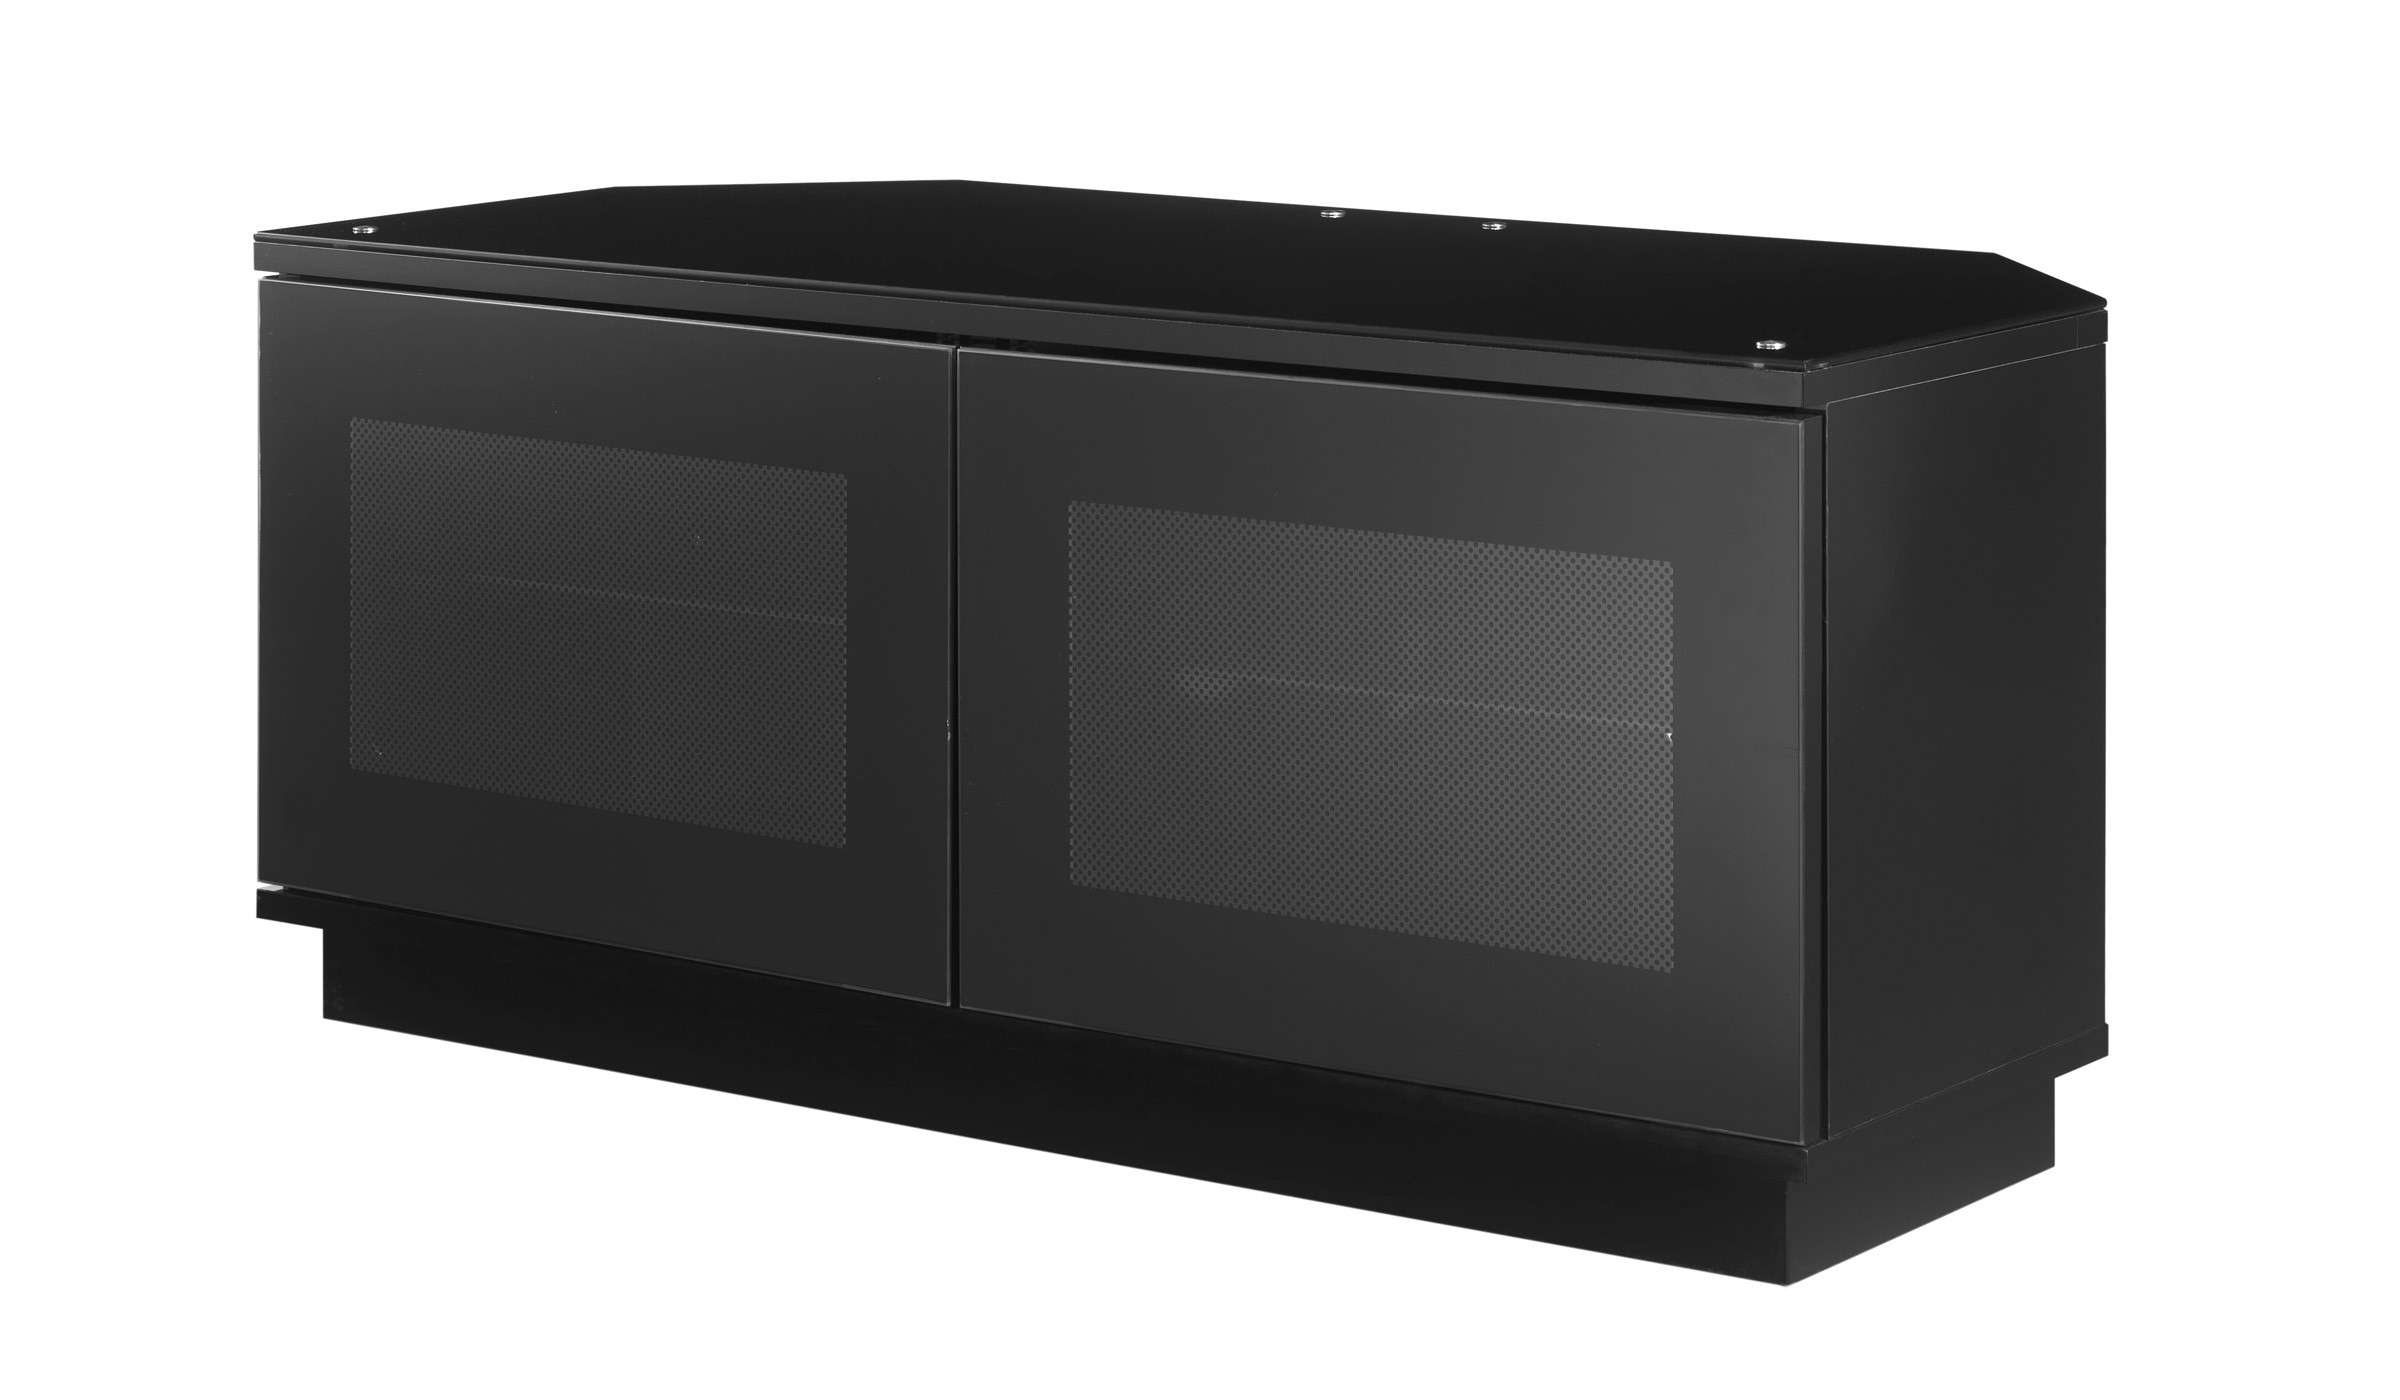 Small Black Tv Stand Cabinet With Door For Corner – Decofurnish For Black Wood Corner Tv Stands (View 13 of 15)